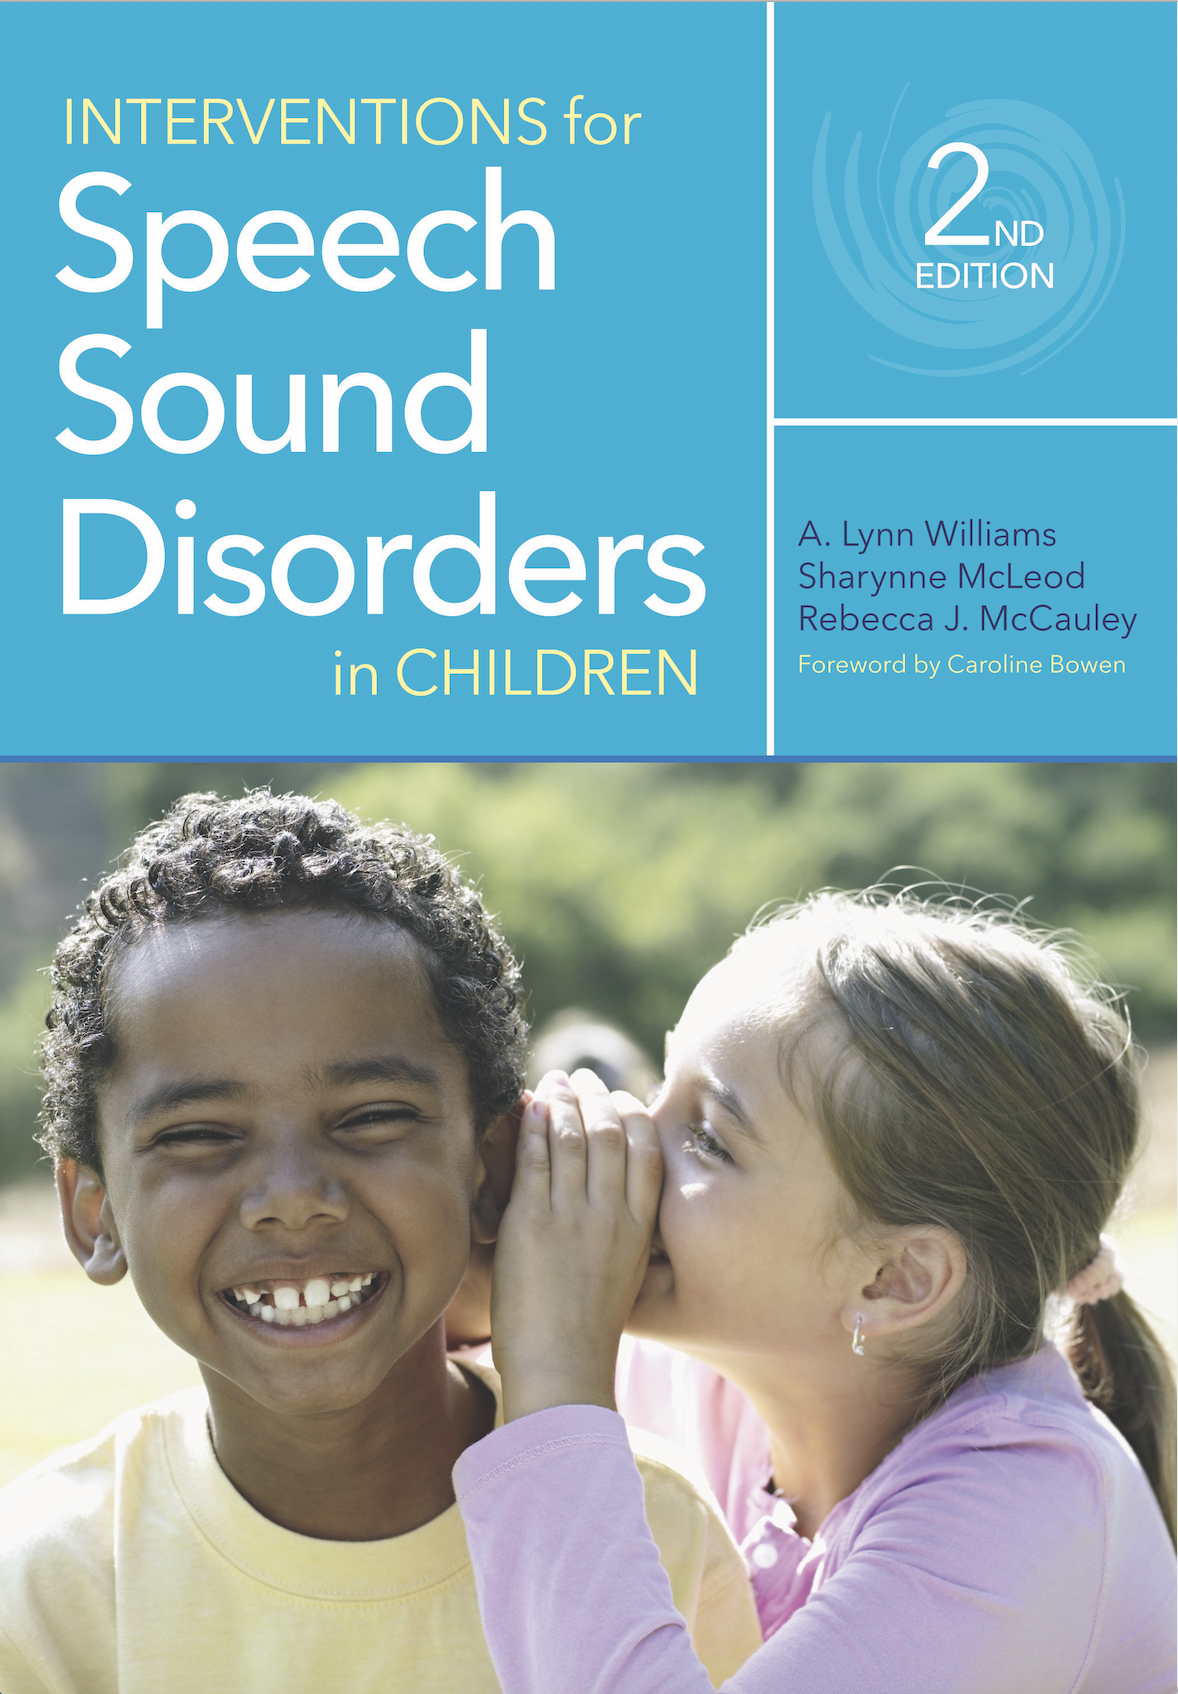 Interventions for Speech Sound Disorders in Children, 2nd Edition